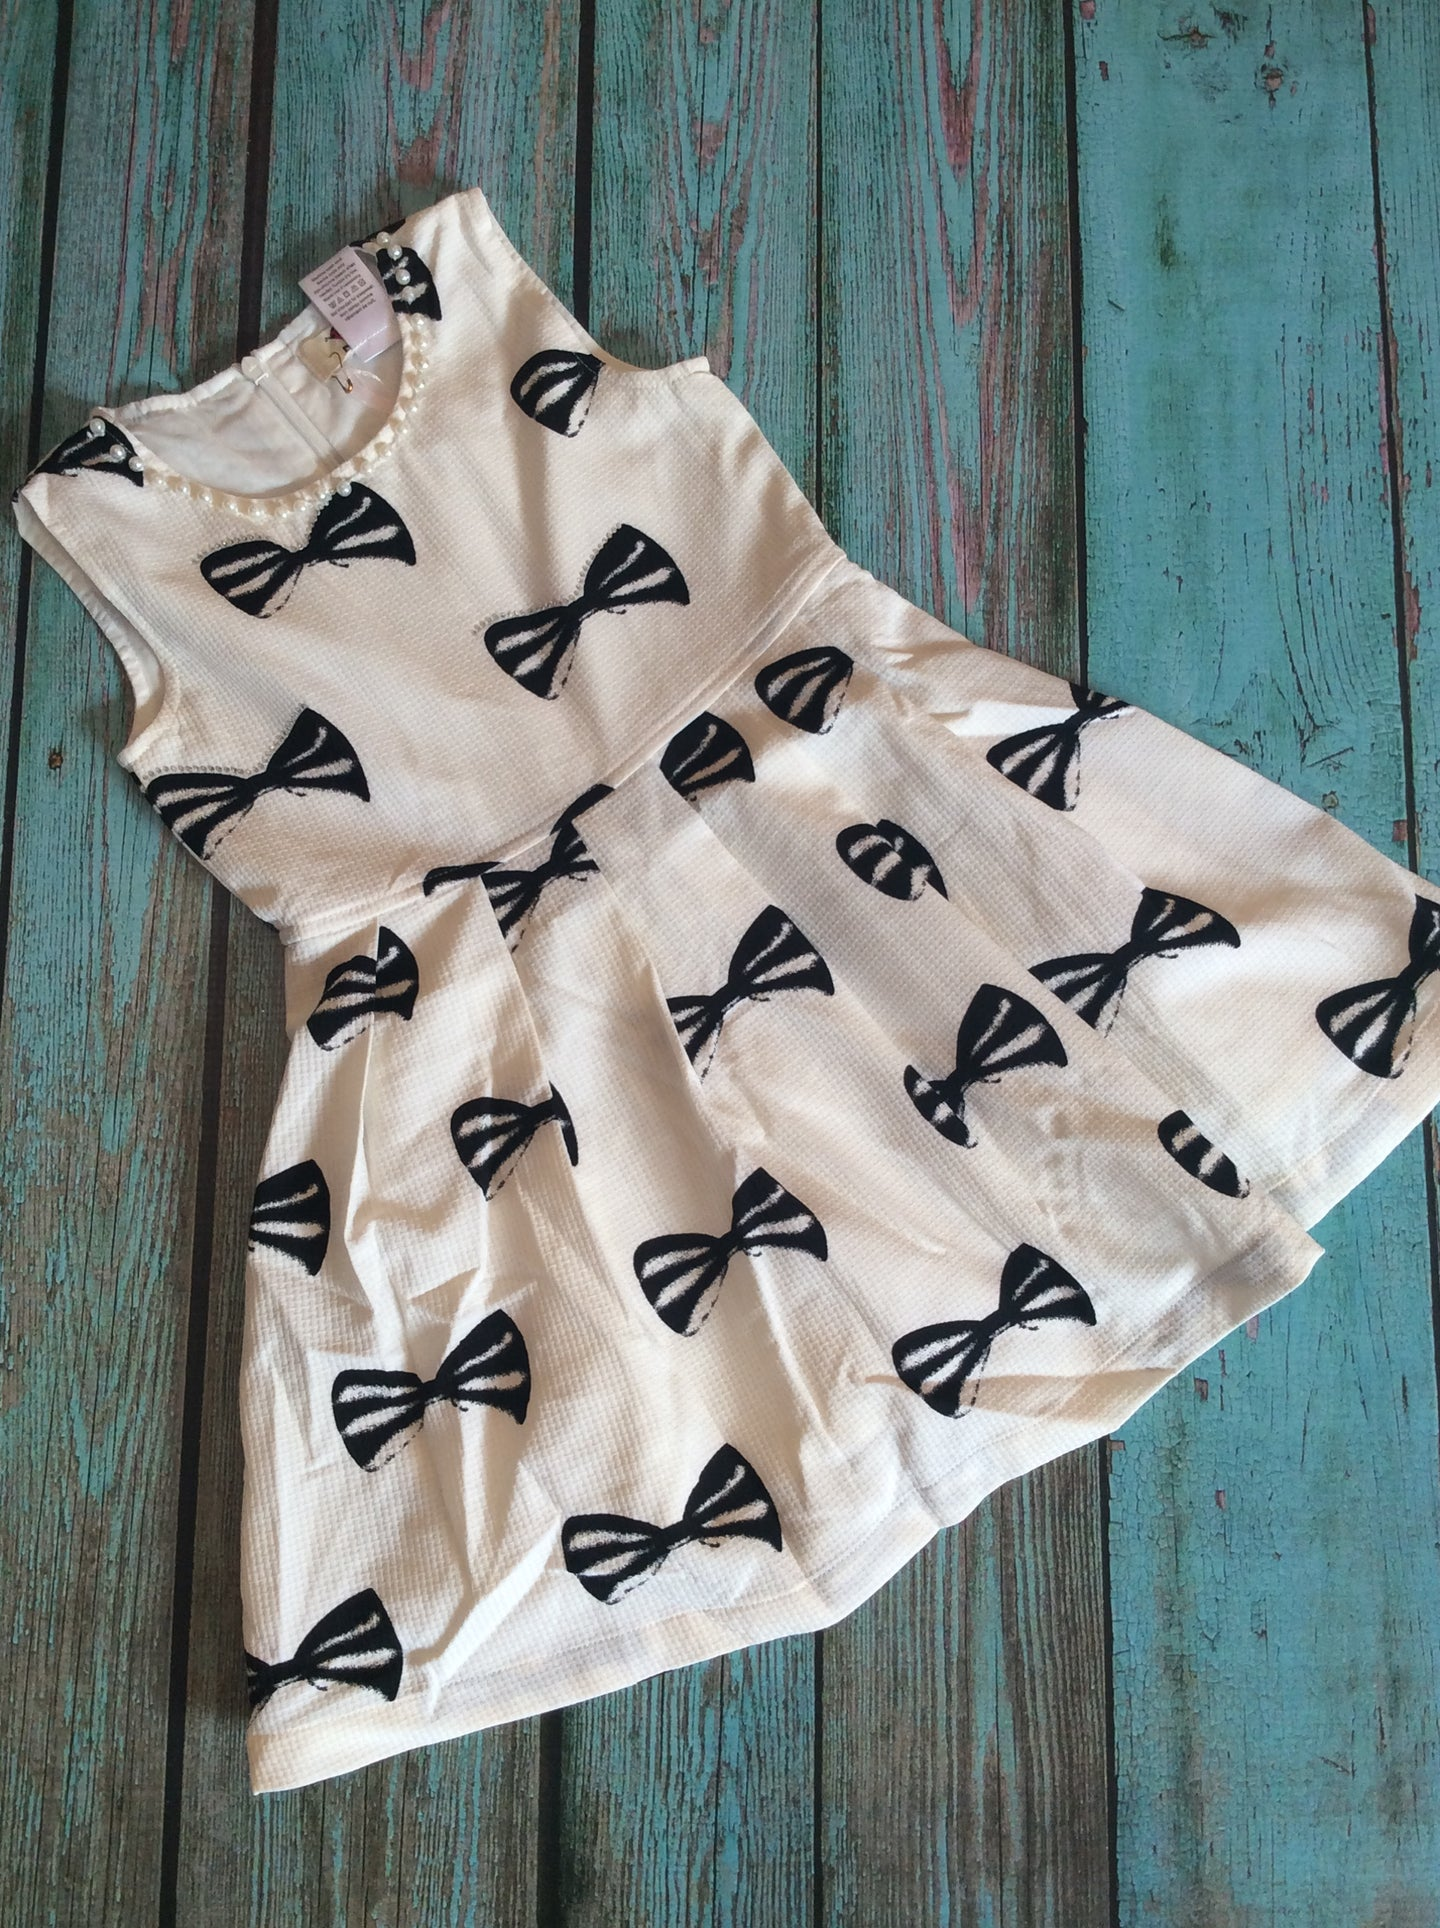 White dress with Black Bows